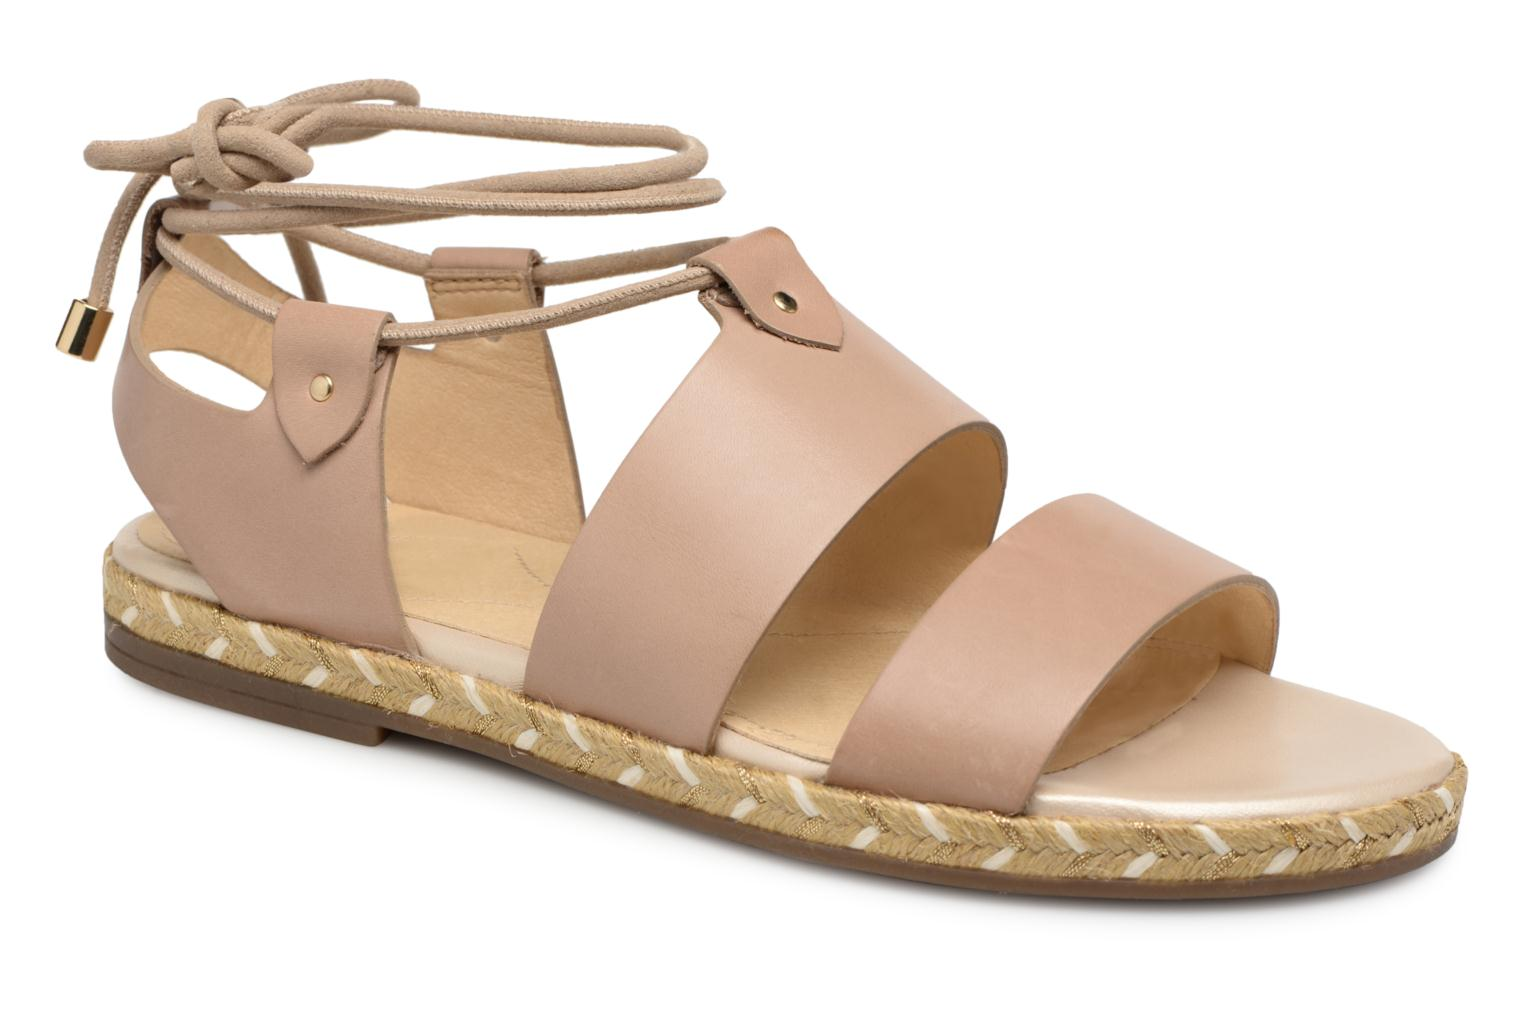 Marques Chaussure femme Geox femme D KOLLEEN A D725SA Taupe P?le